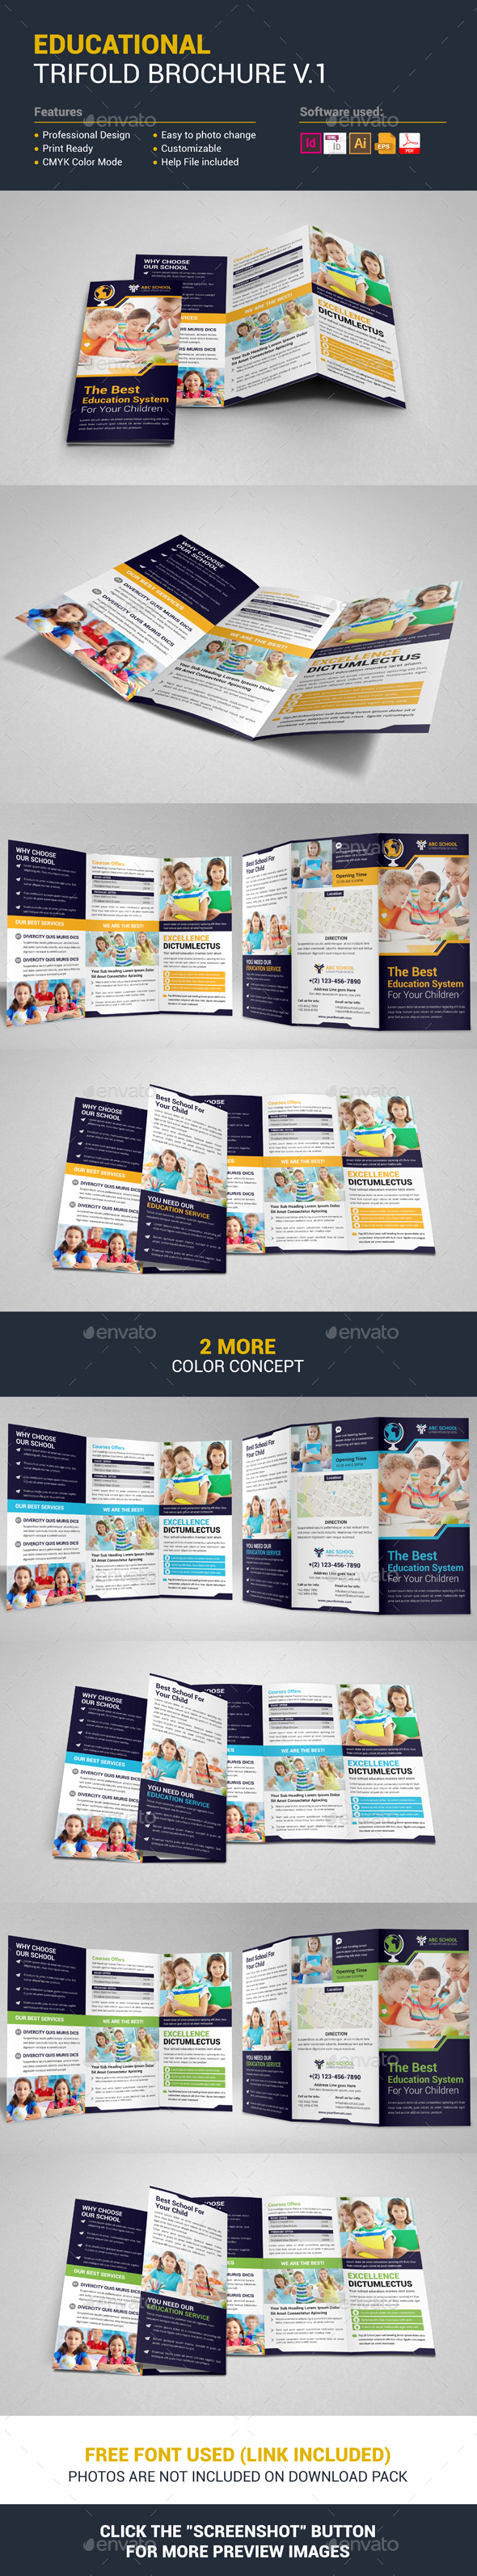 Educational Trifold Brochure Template Vector EPS, InDesign INDD, AI ...